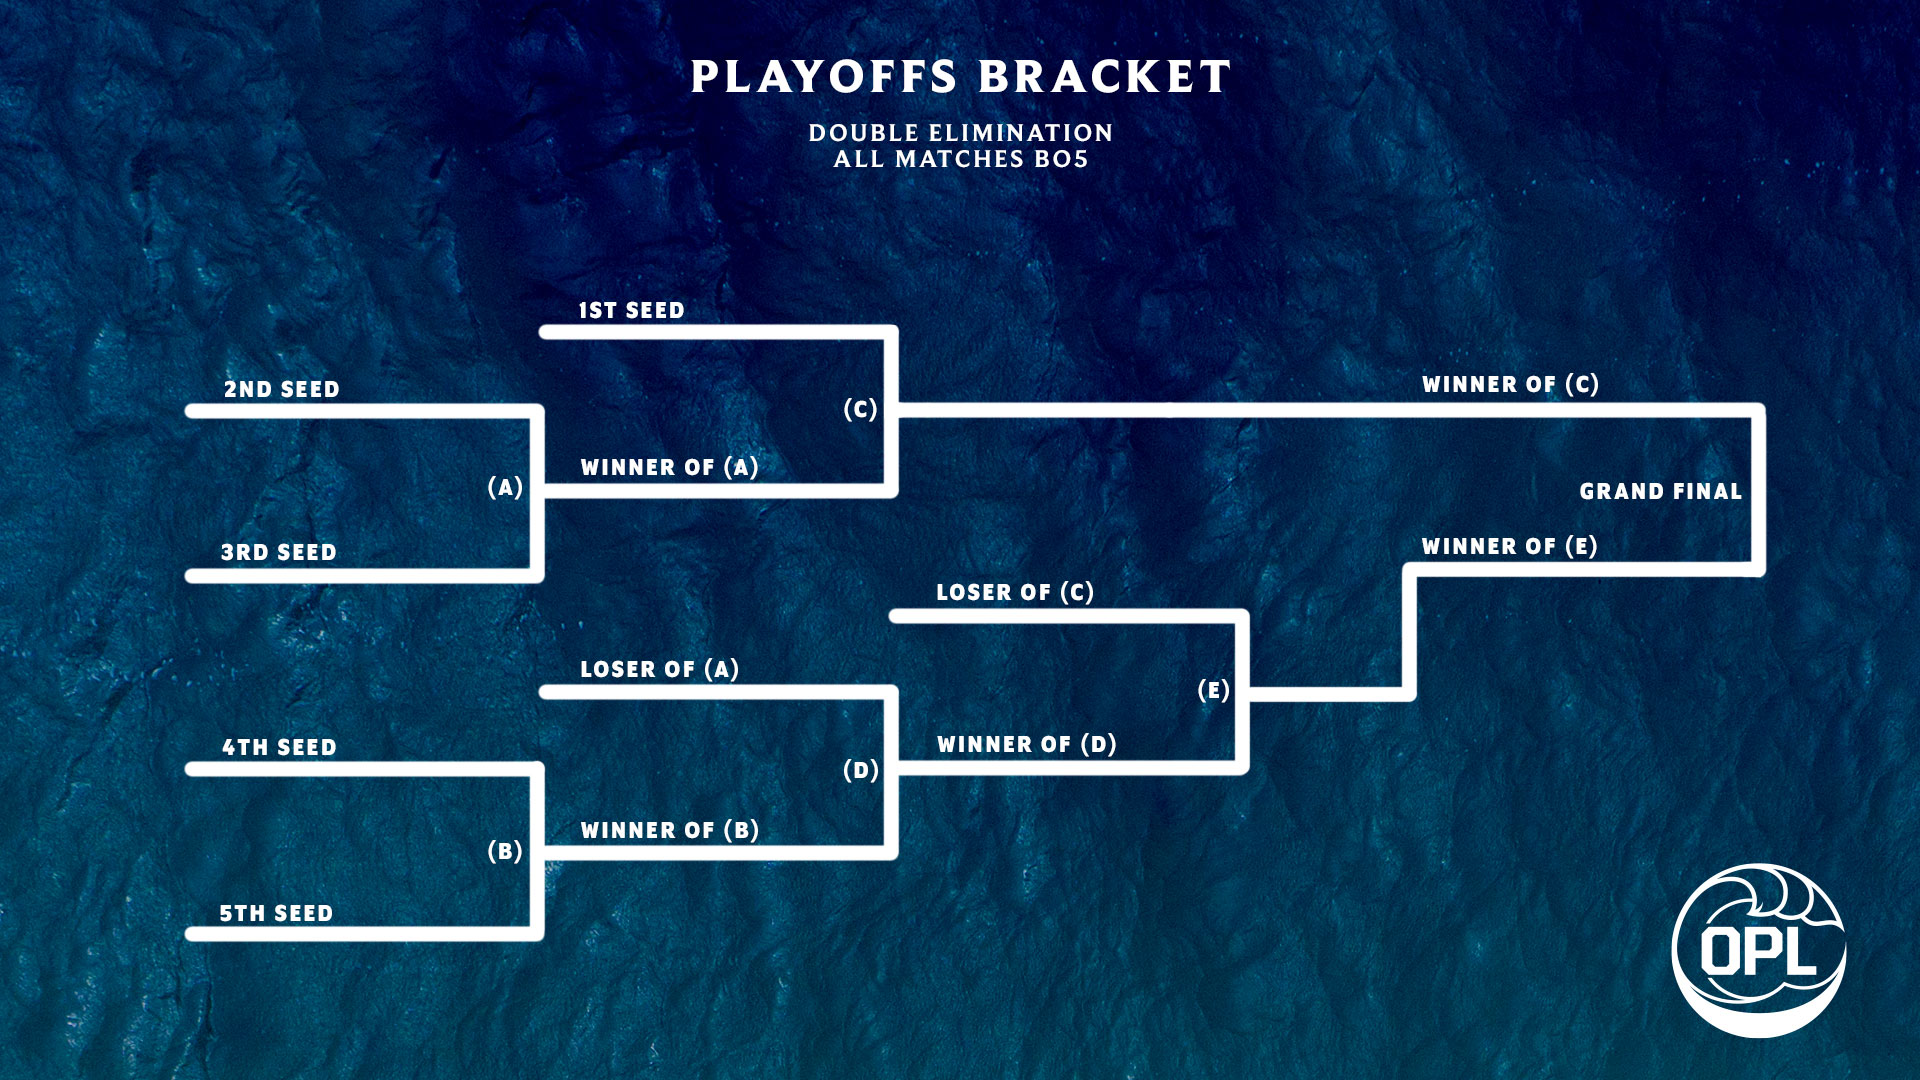 OPLFinalsBracket_Updated.jpg